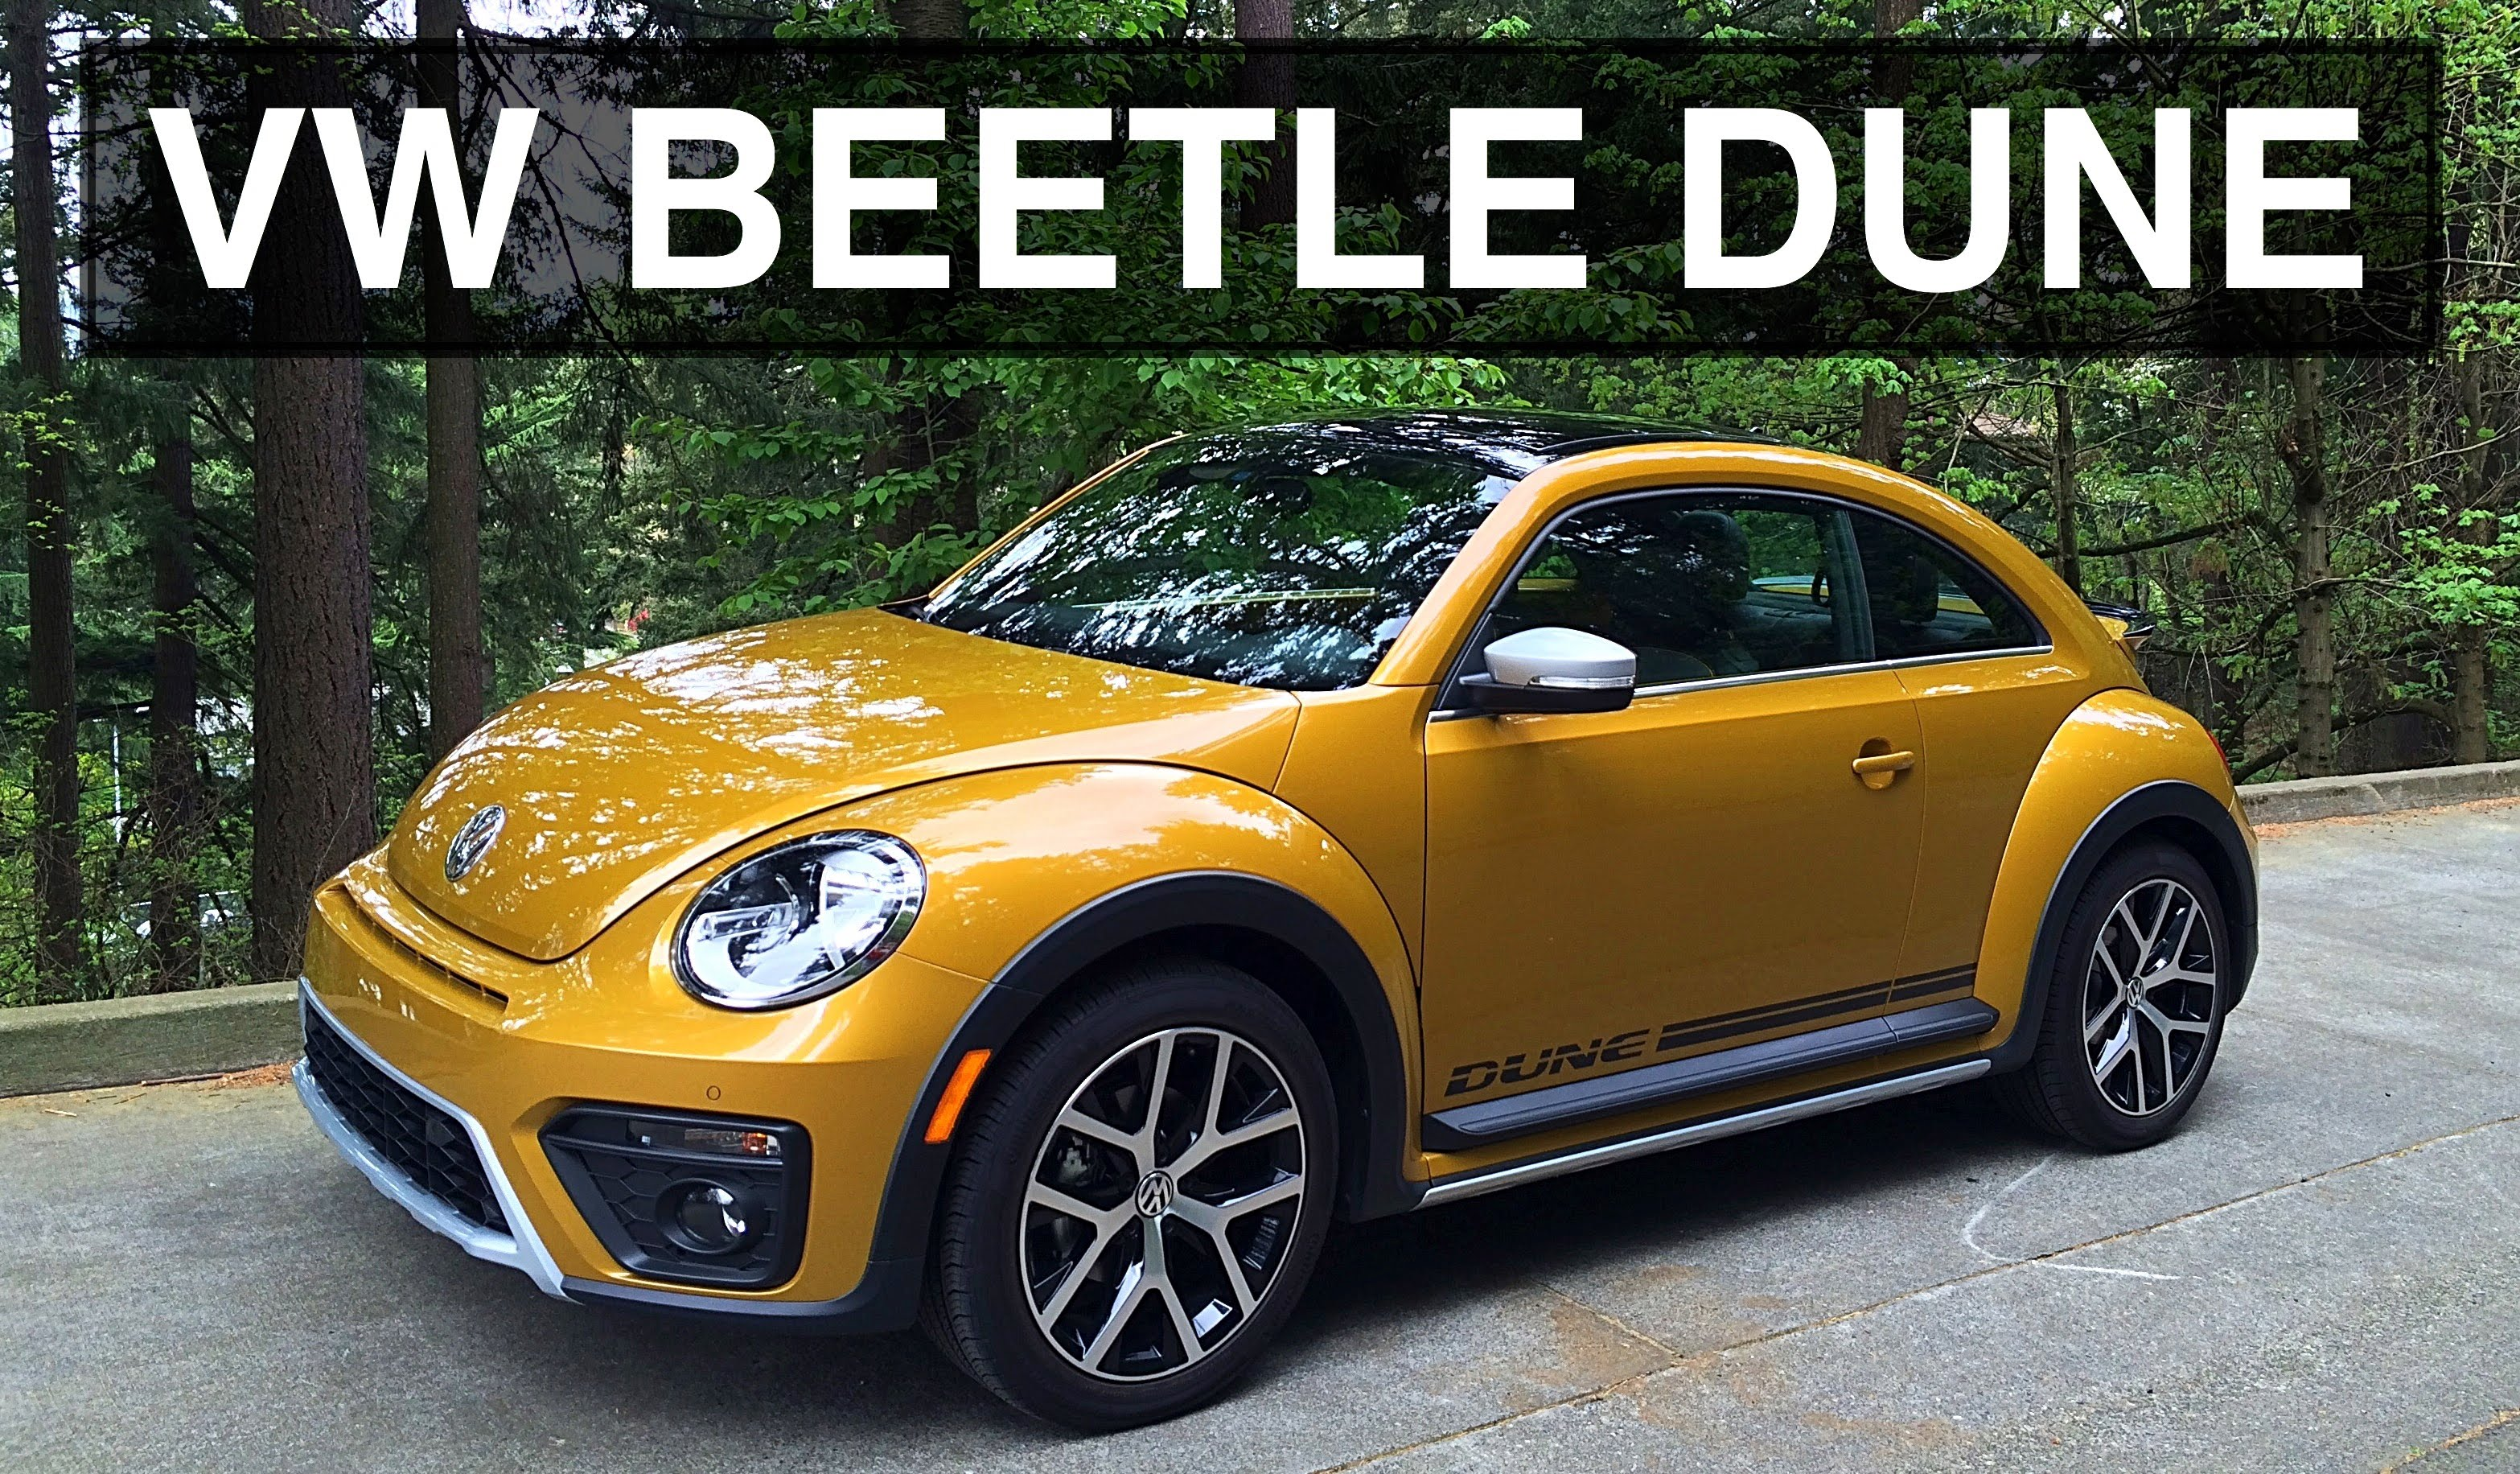 Beetle Dune Could Actually Be More Fun You Ever